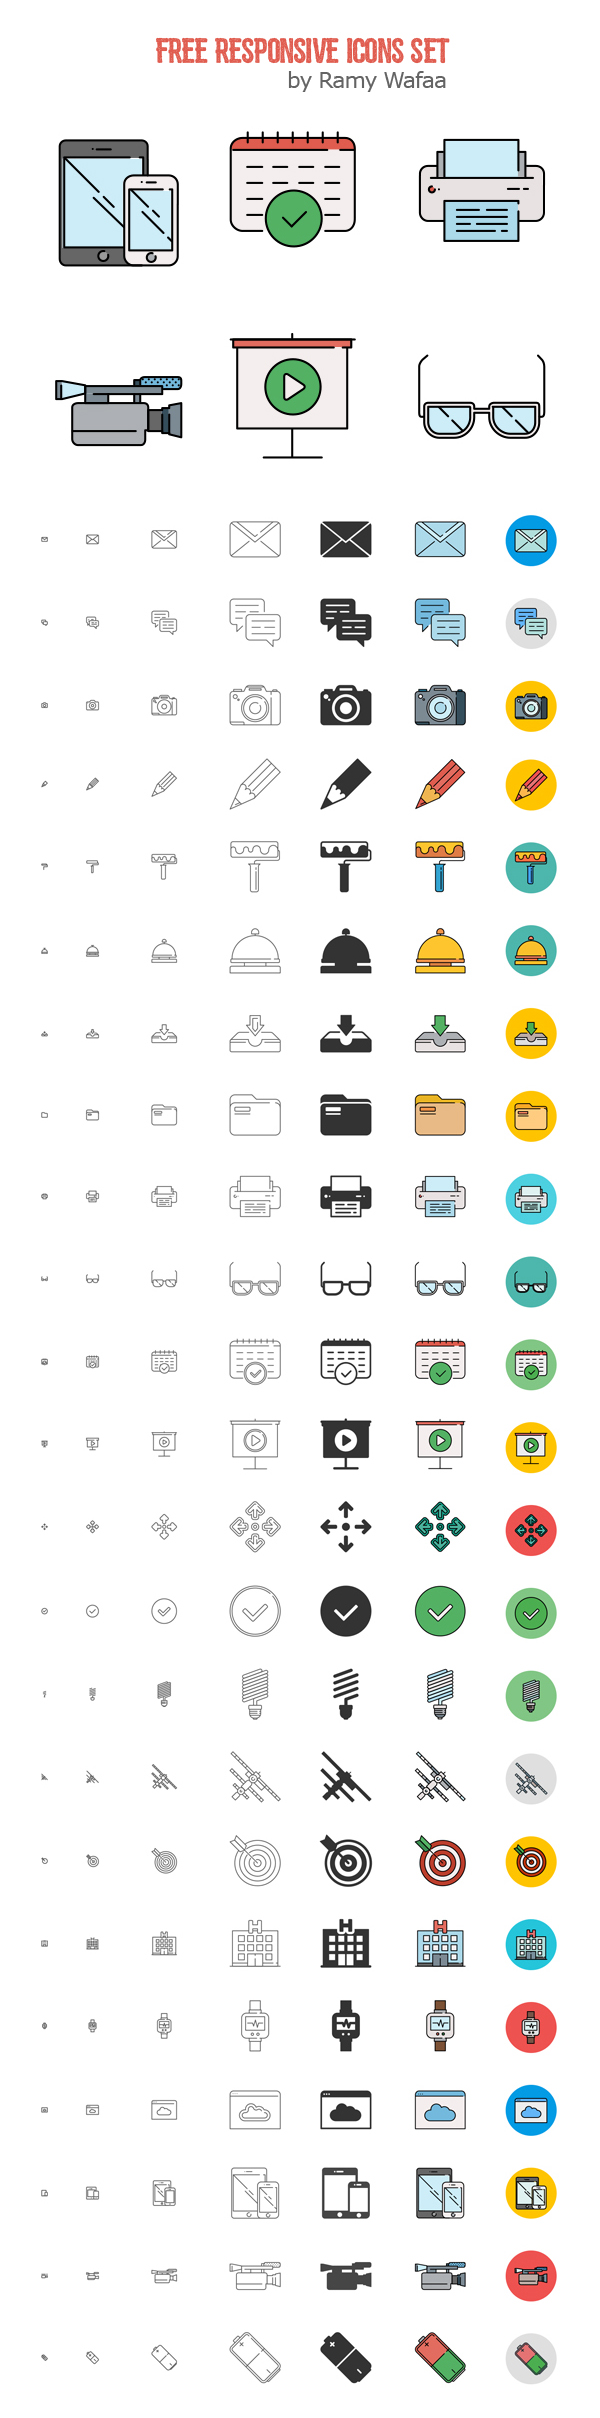 Free Responsive Material Icons Set  (192 Icons)